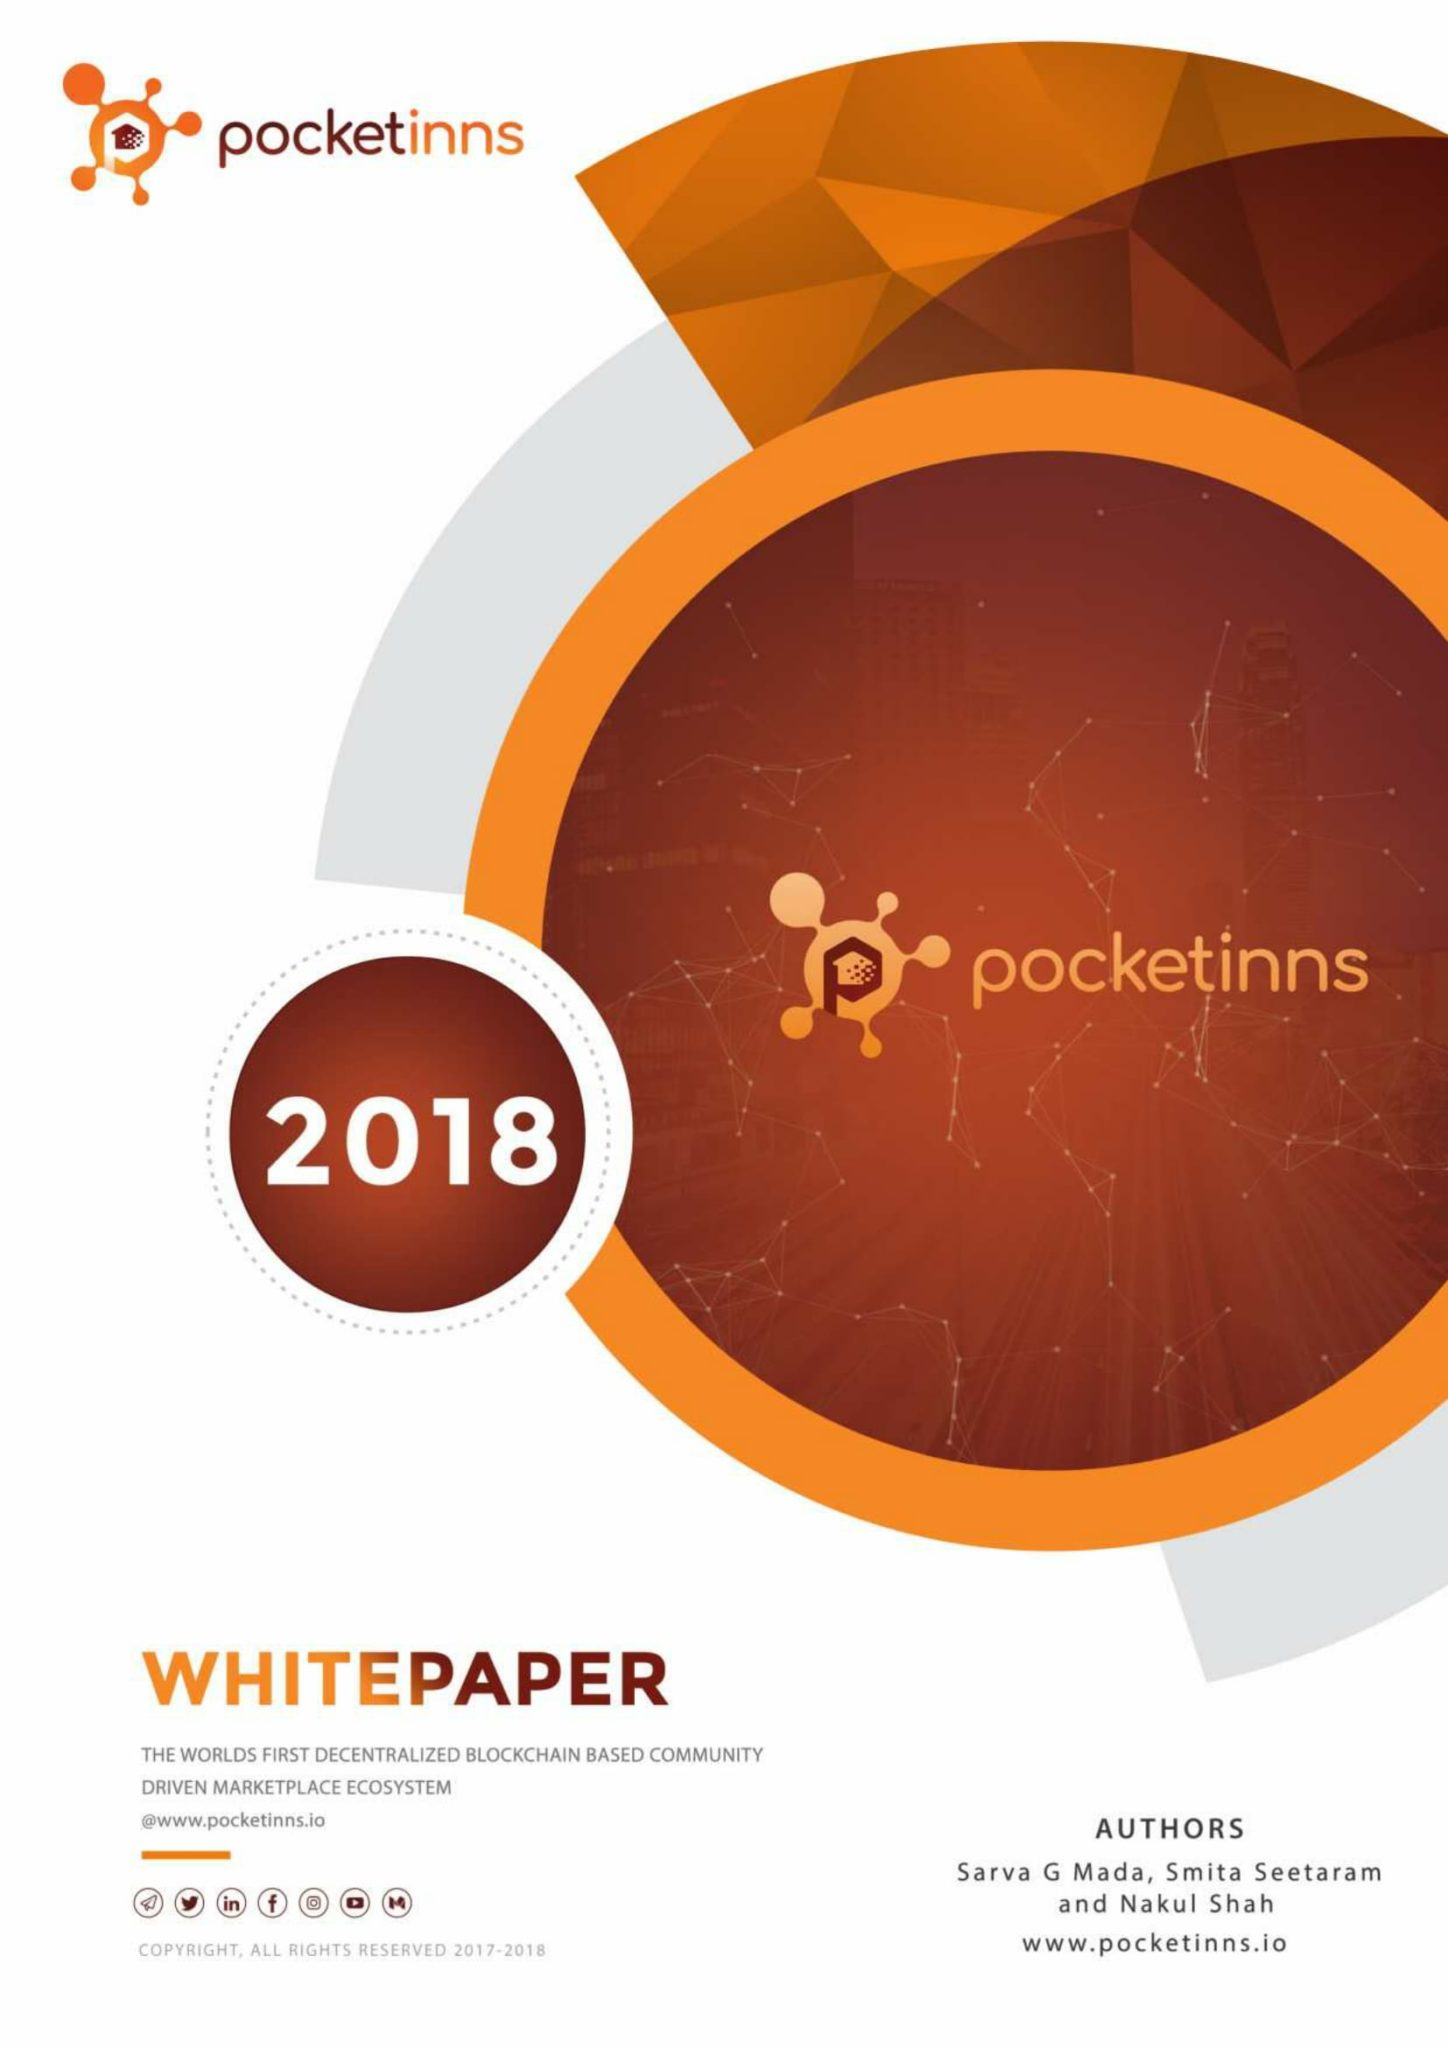 Pocketinns White Paper